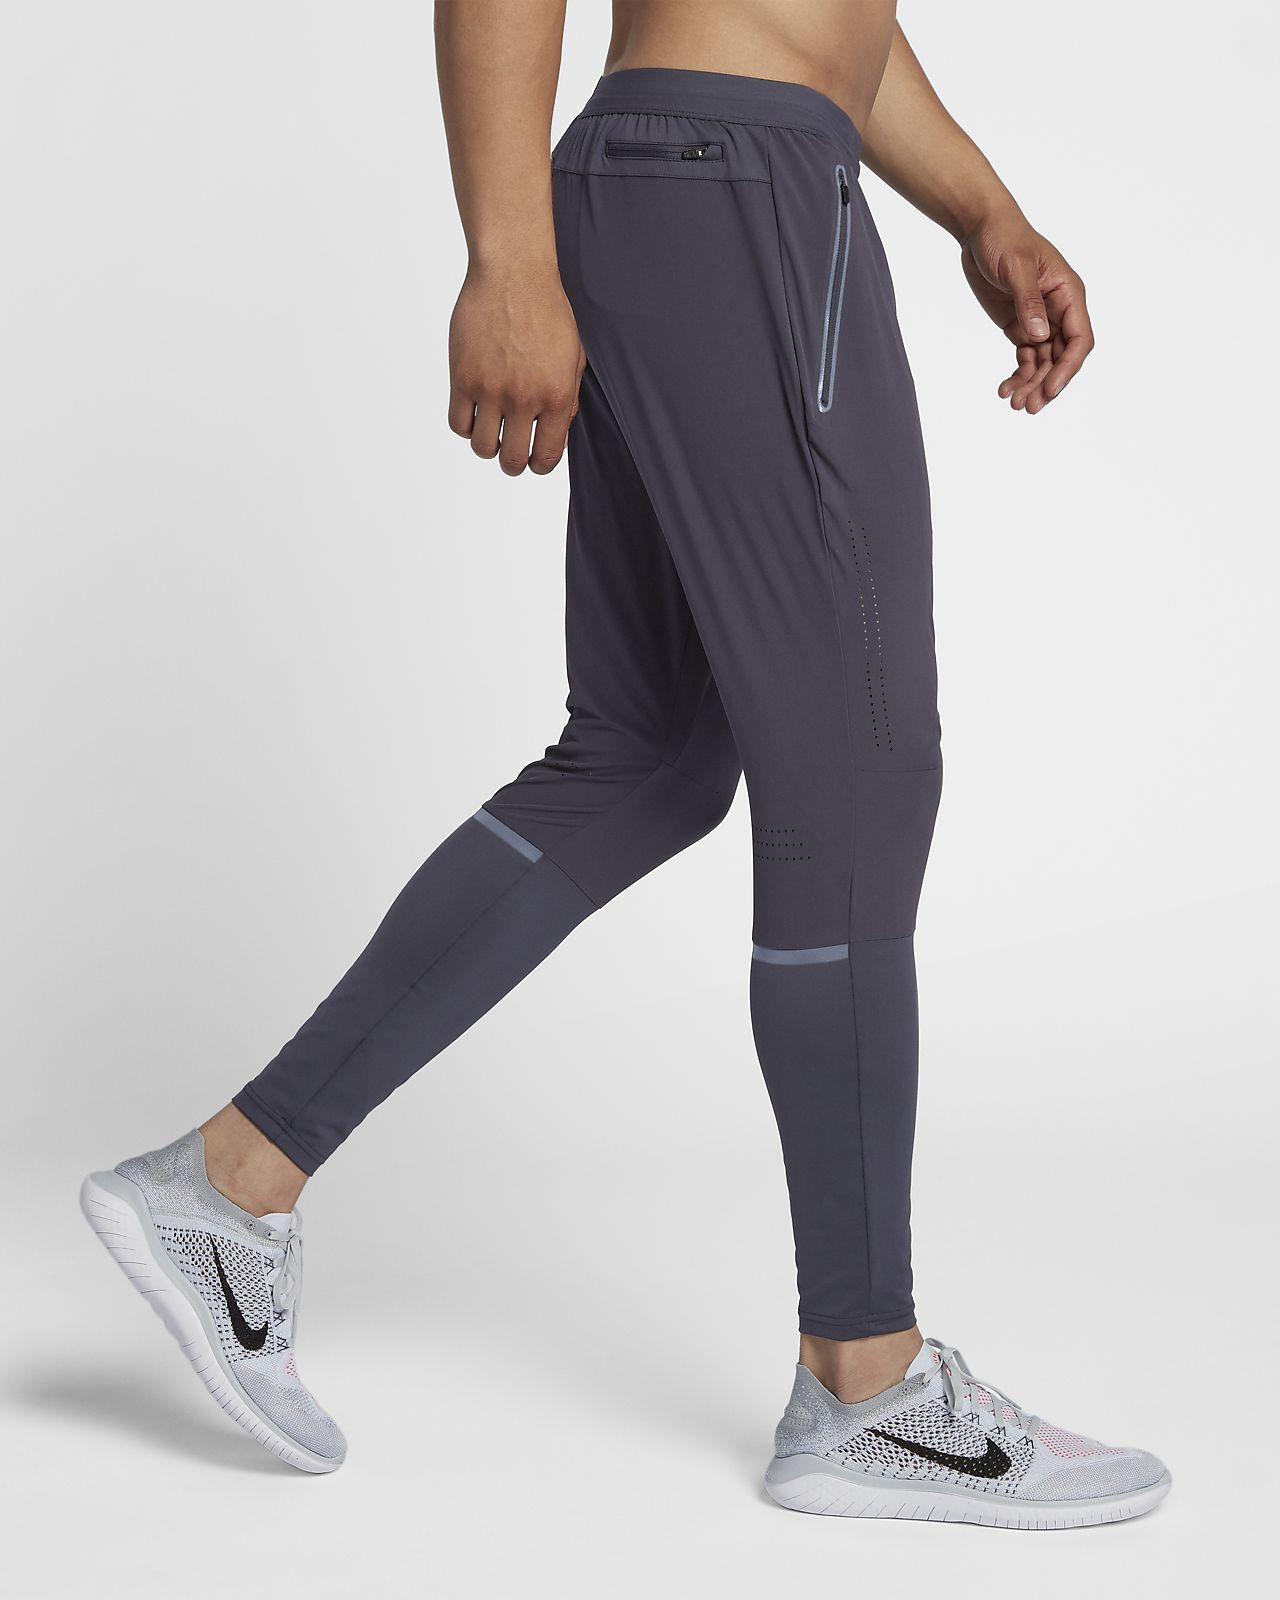 94e211f5d381 Nike Swift Men s Running Trousers. Nike.com GB